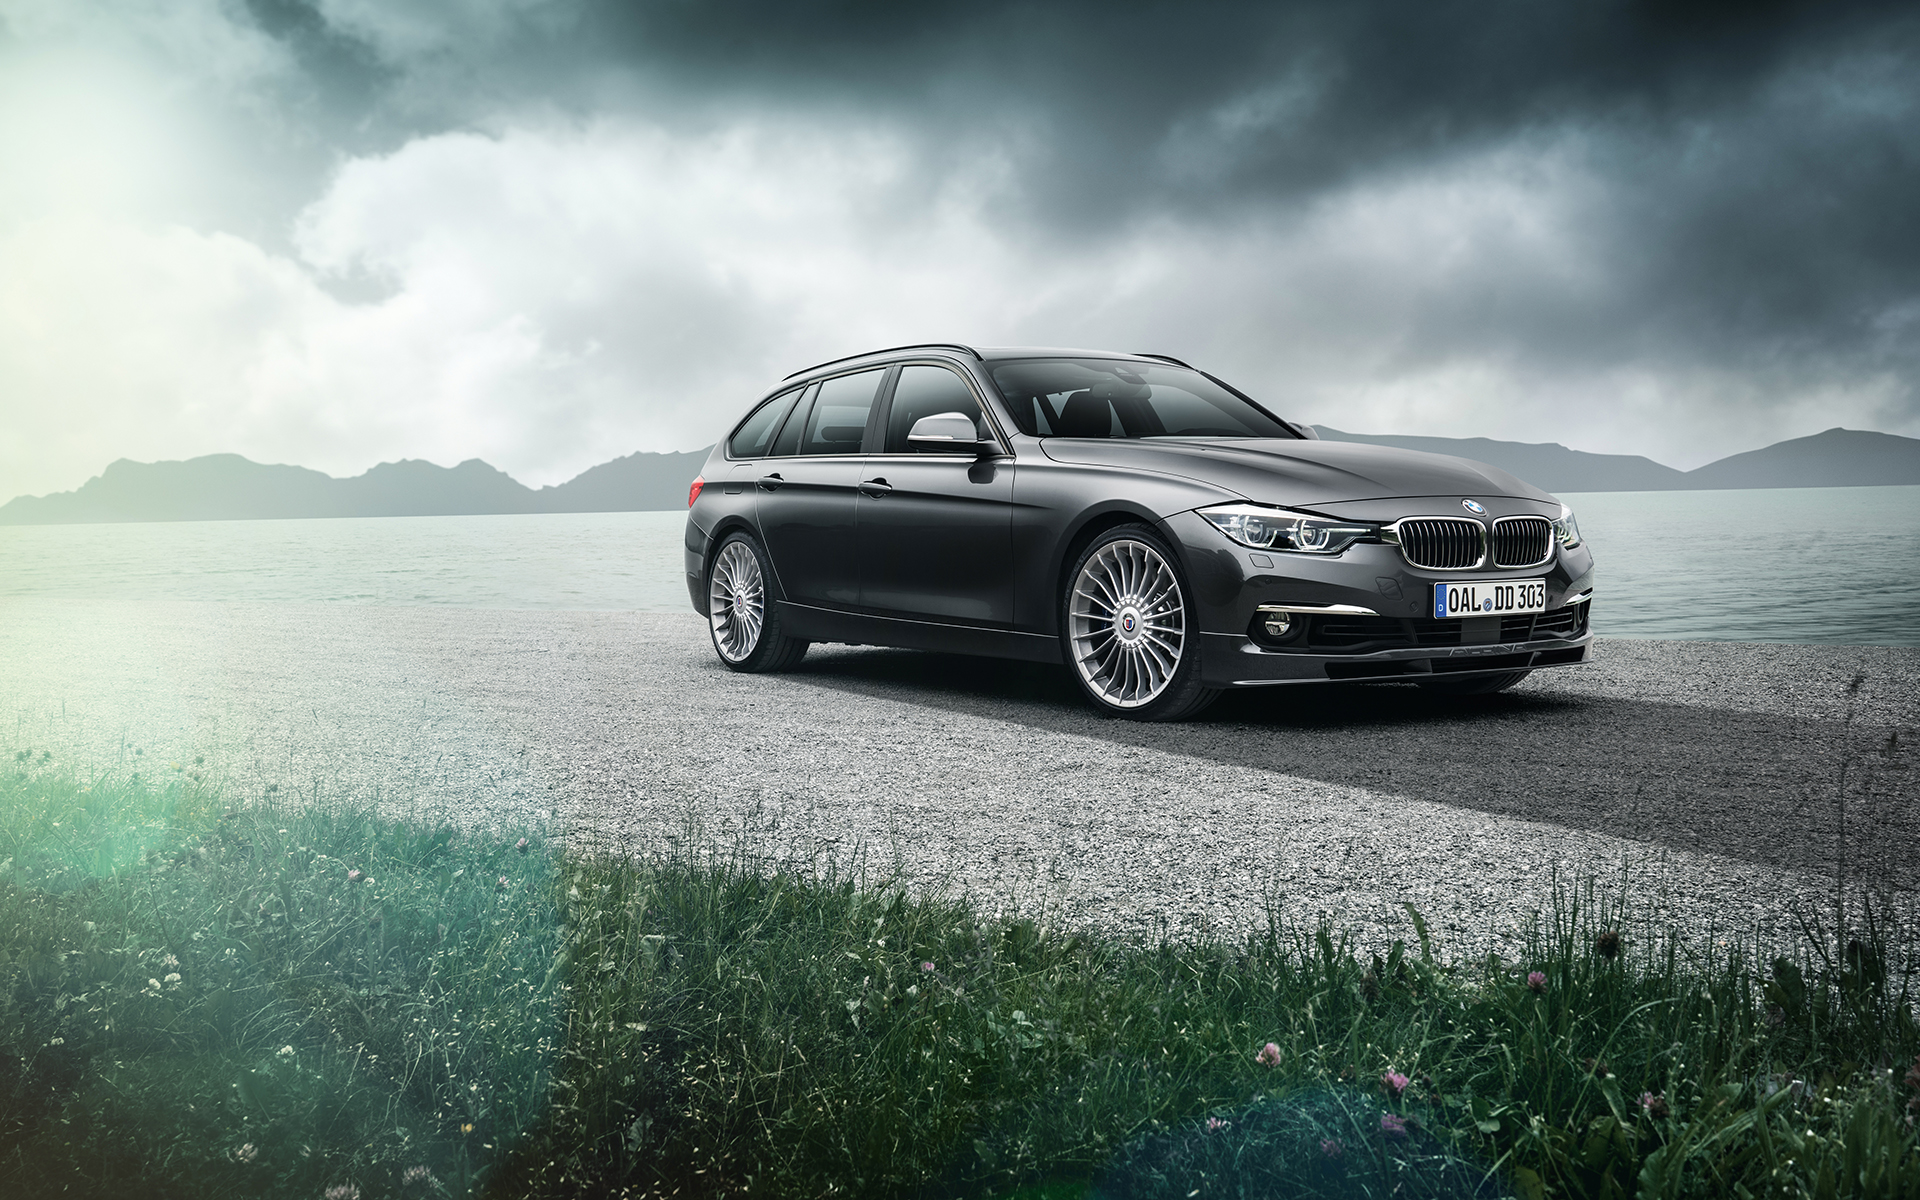 BMW ALPINA D3 BITURBO LCI 10 2